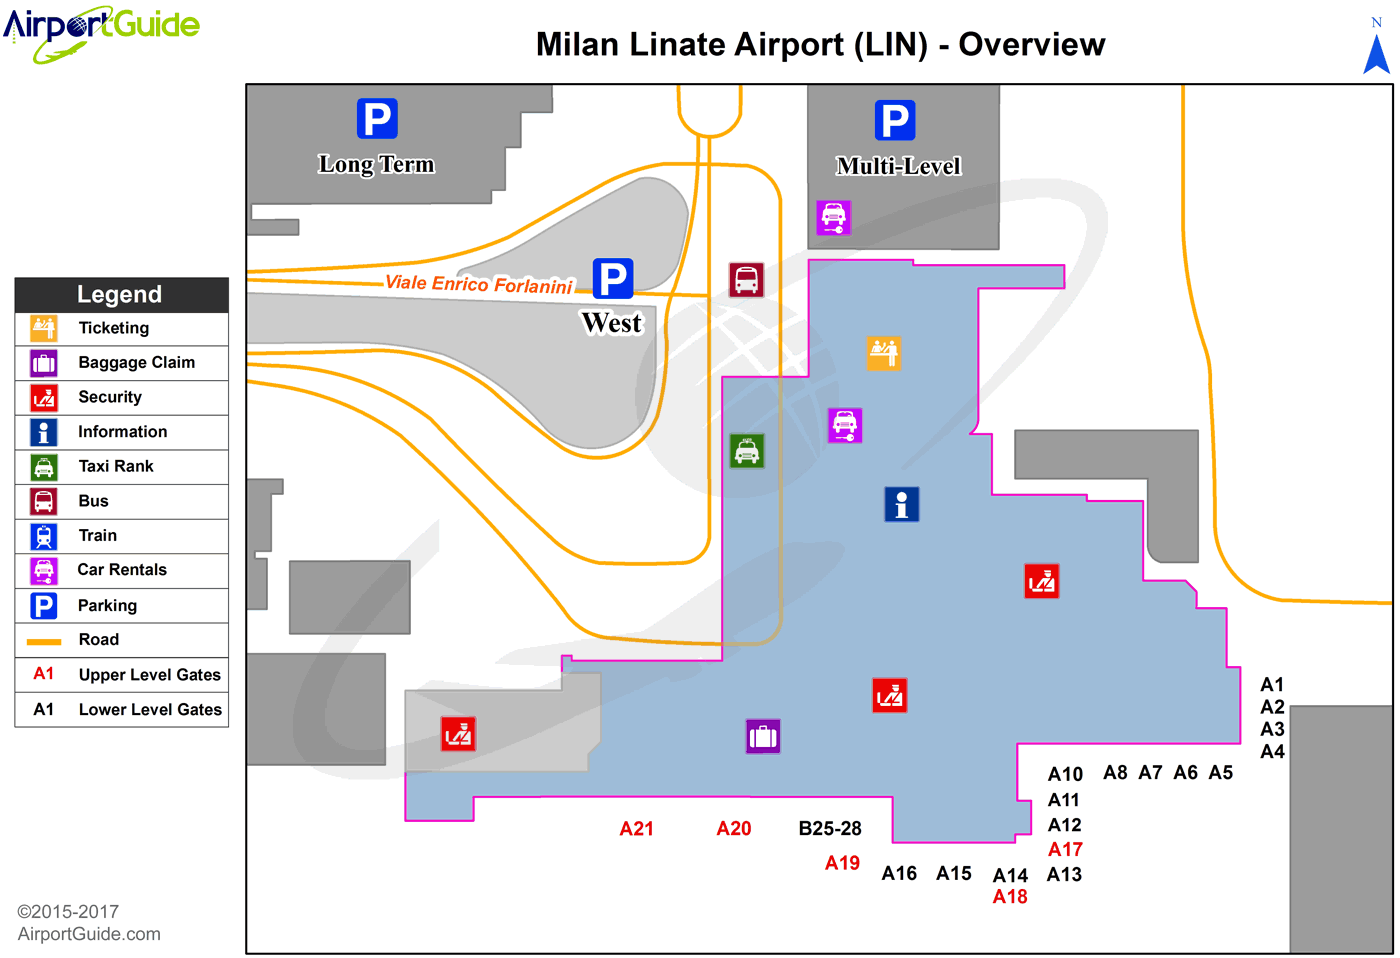 Milan - Linate (LIN) Airport Terminal Map - Overview